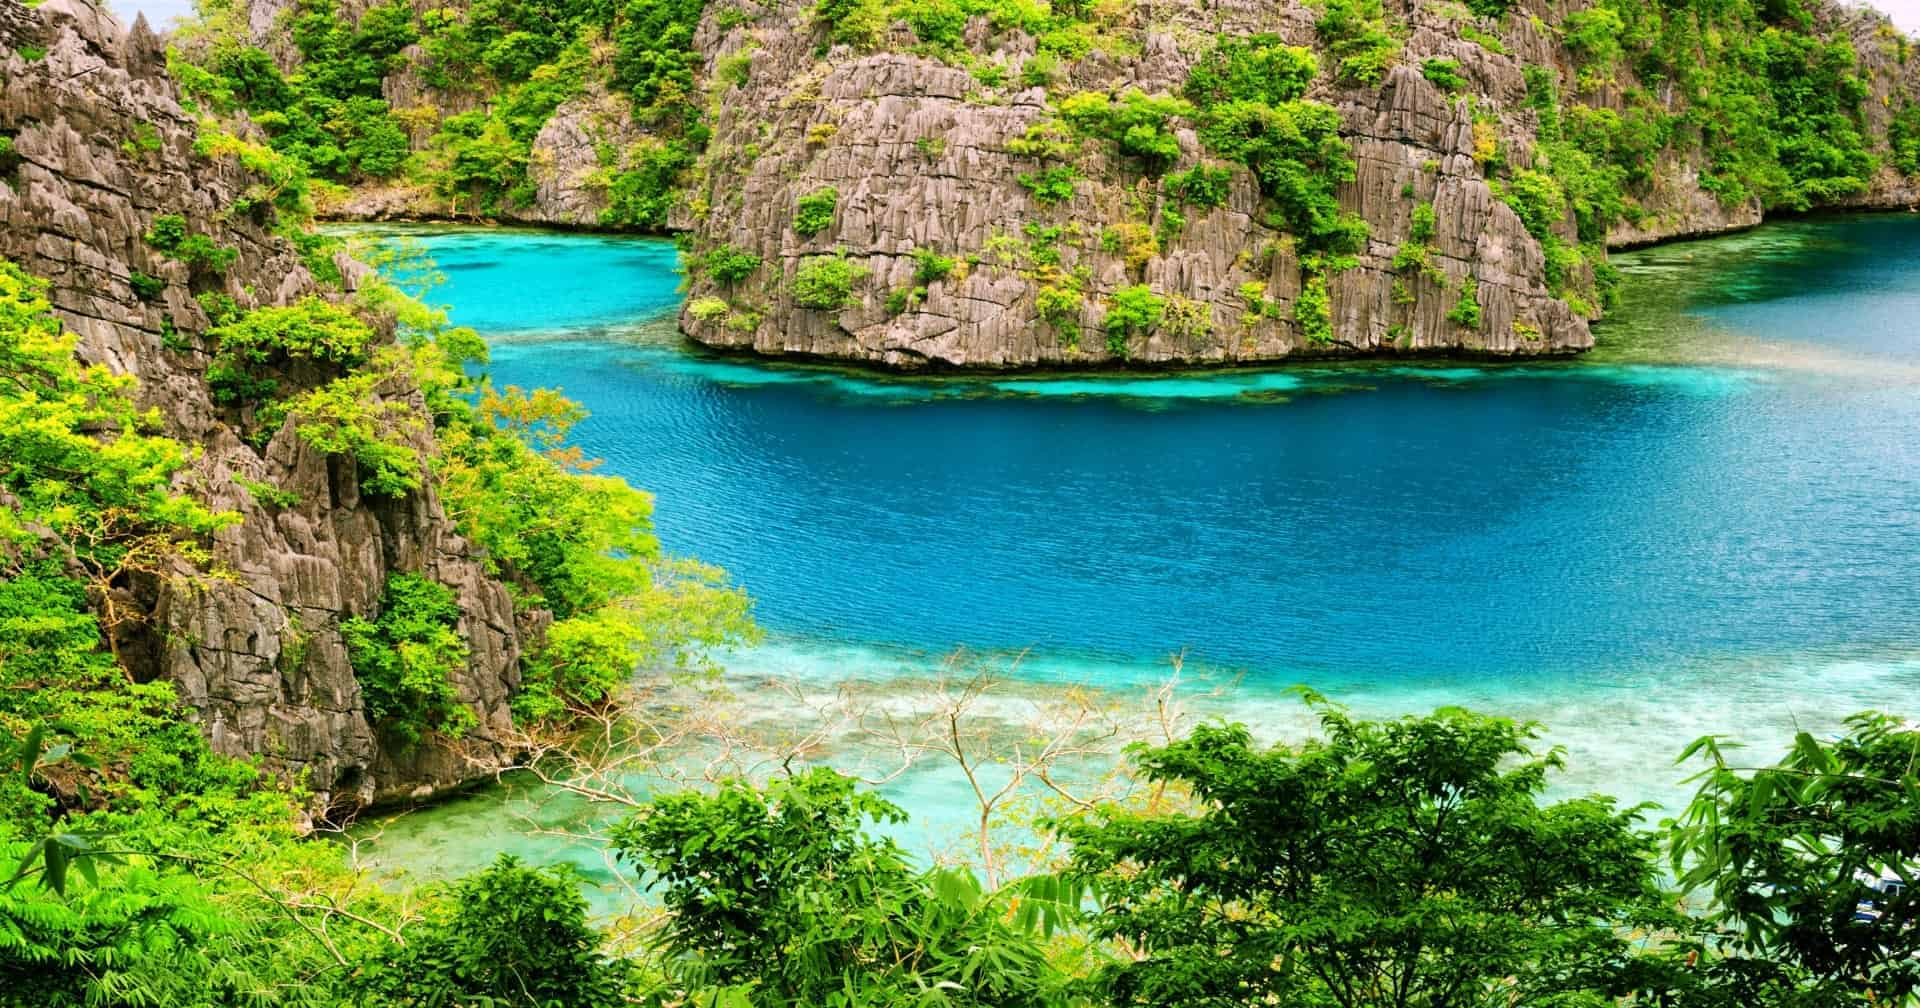 Busuanga Island Palawan one of the calamian island group